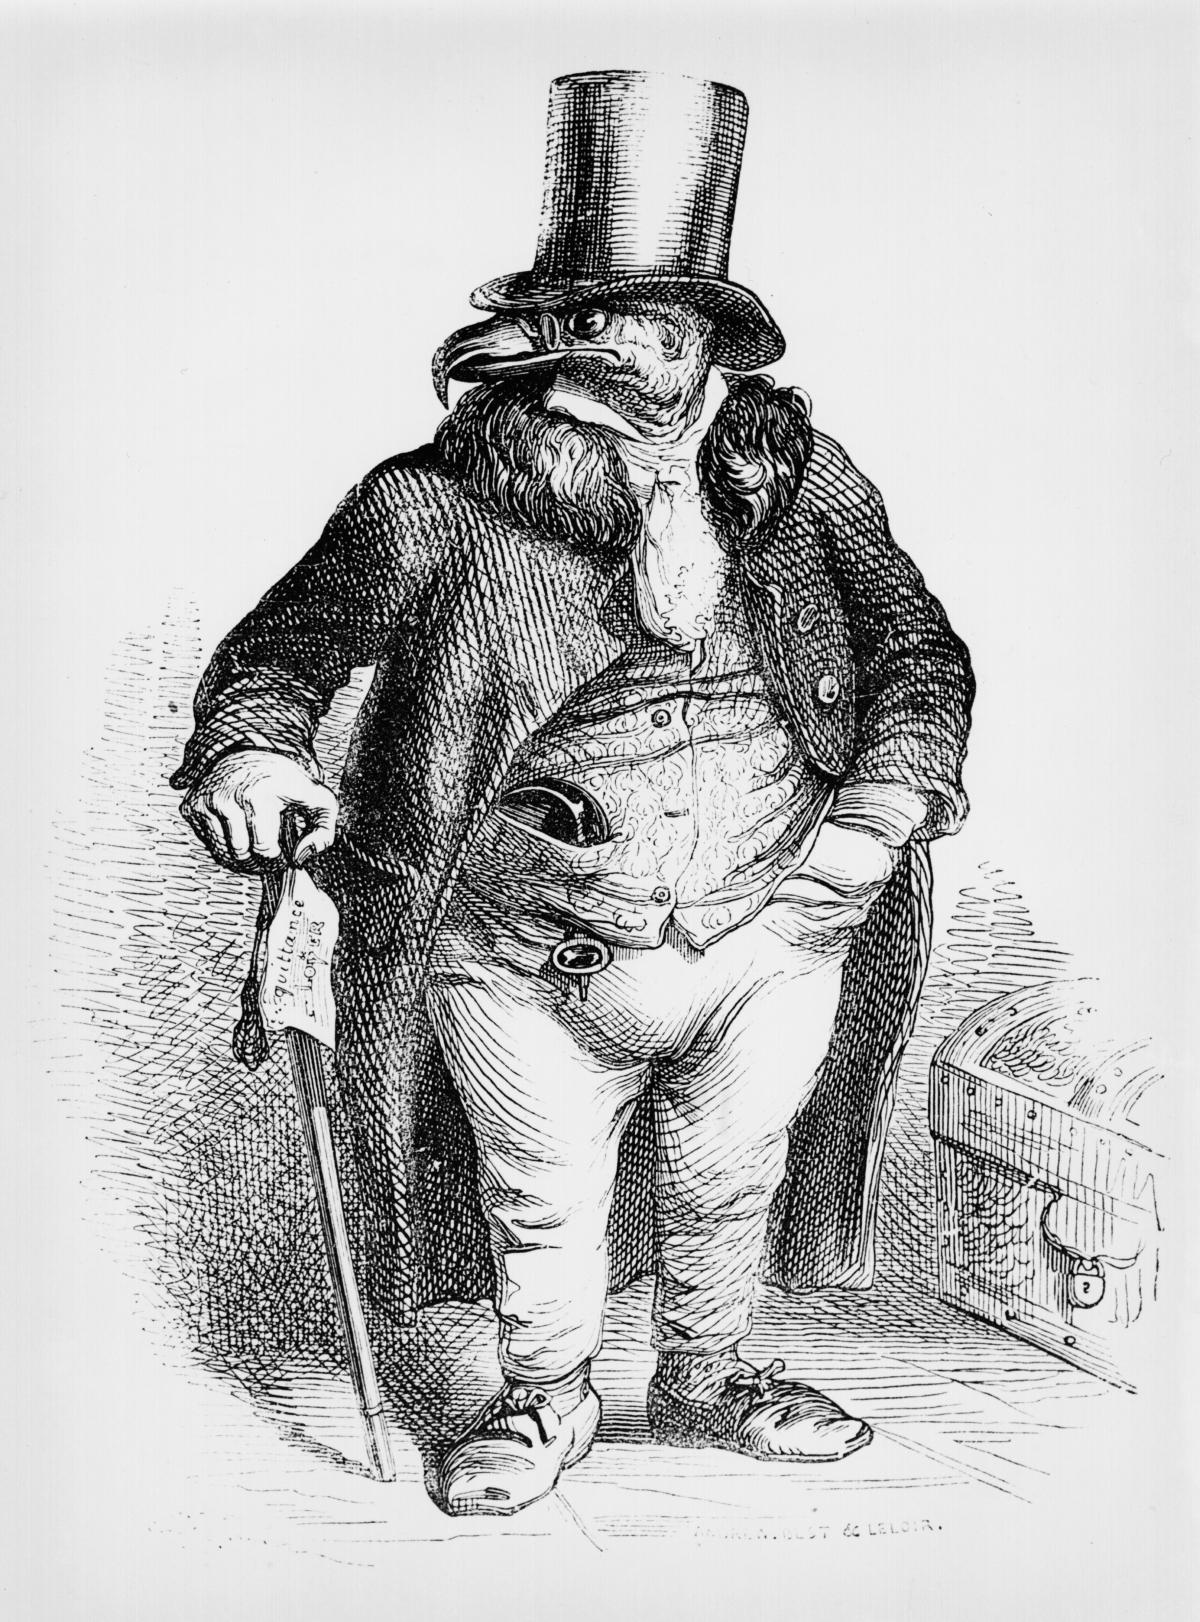 A vulture dressed as a portly gentleman, wearing a top hat, coat and tails